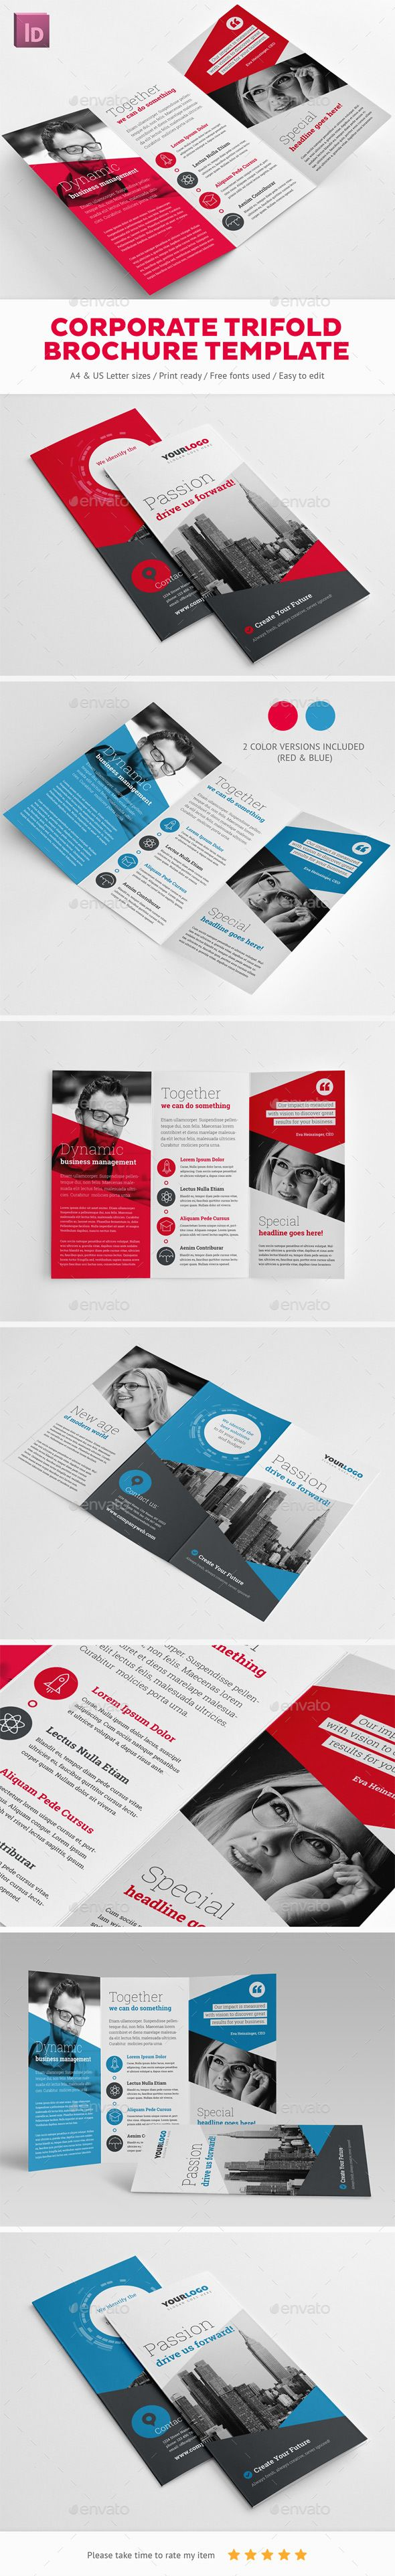 #Corporate Trifold Brochure #Template - Corporate #Brochures Download here: https://graphicriver.net/item/corporate-trifold-brochure-template/18710143?ref=alena994